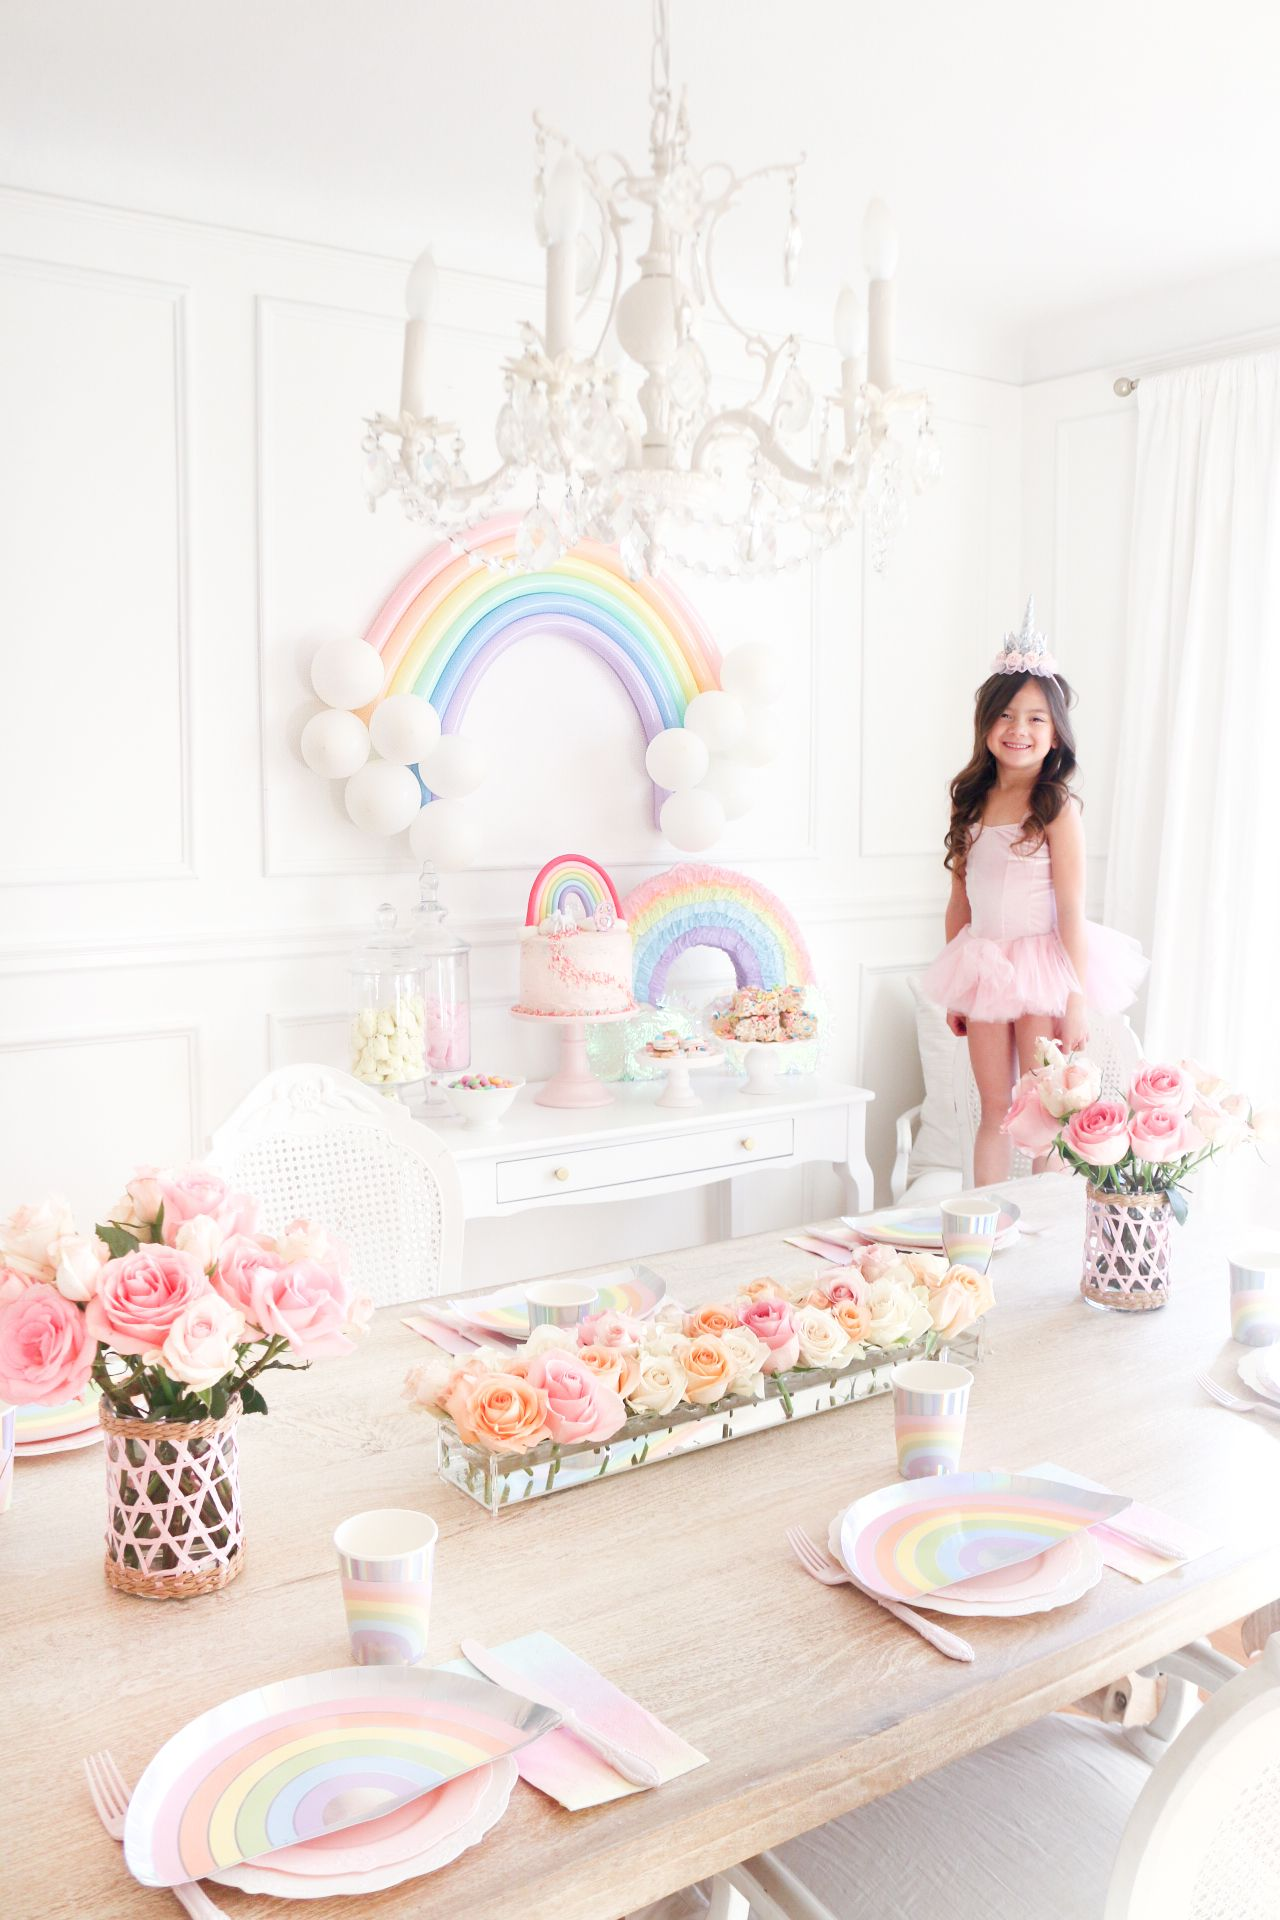 Bella's Rainbow Birthday Party